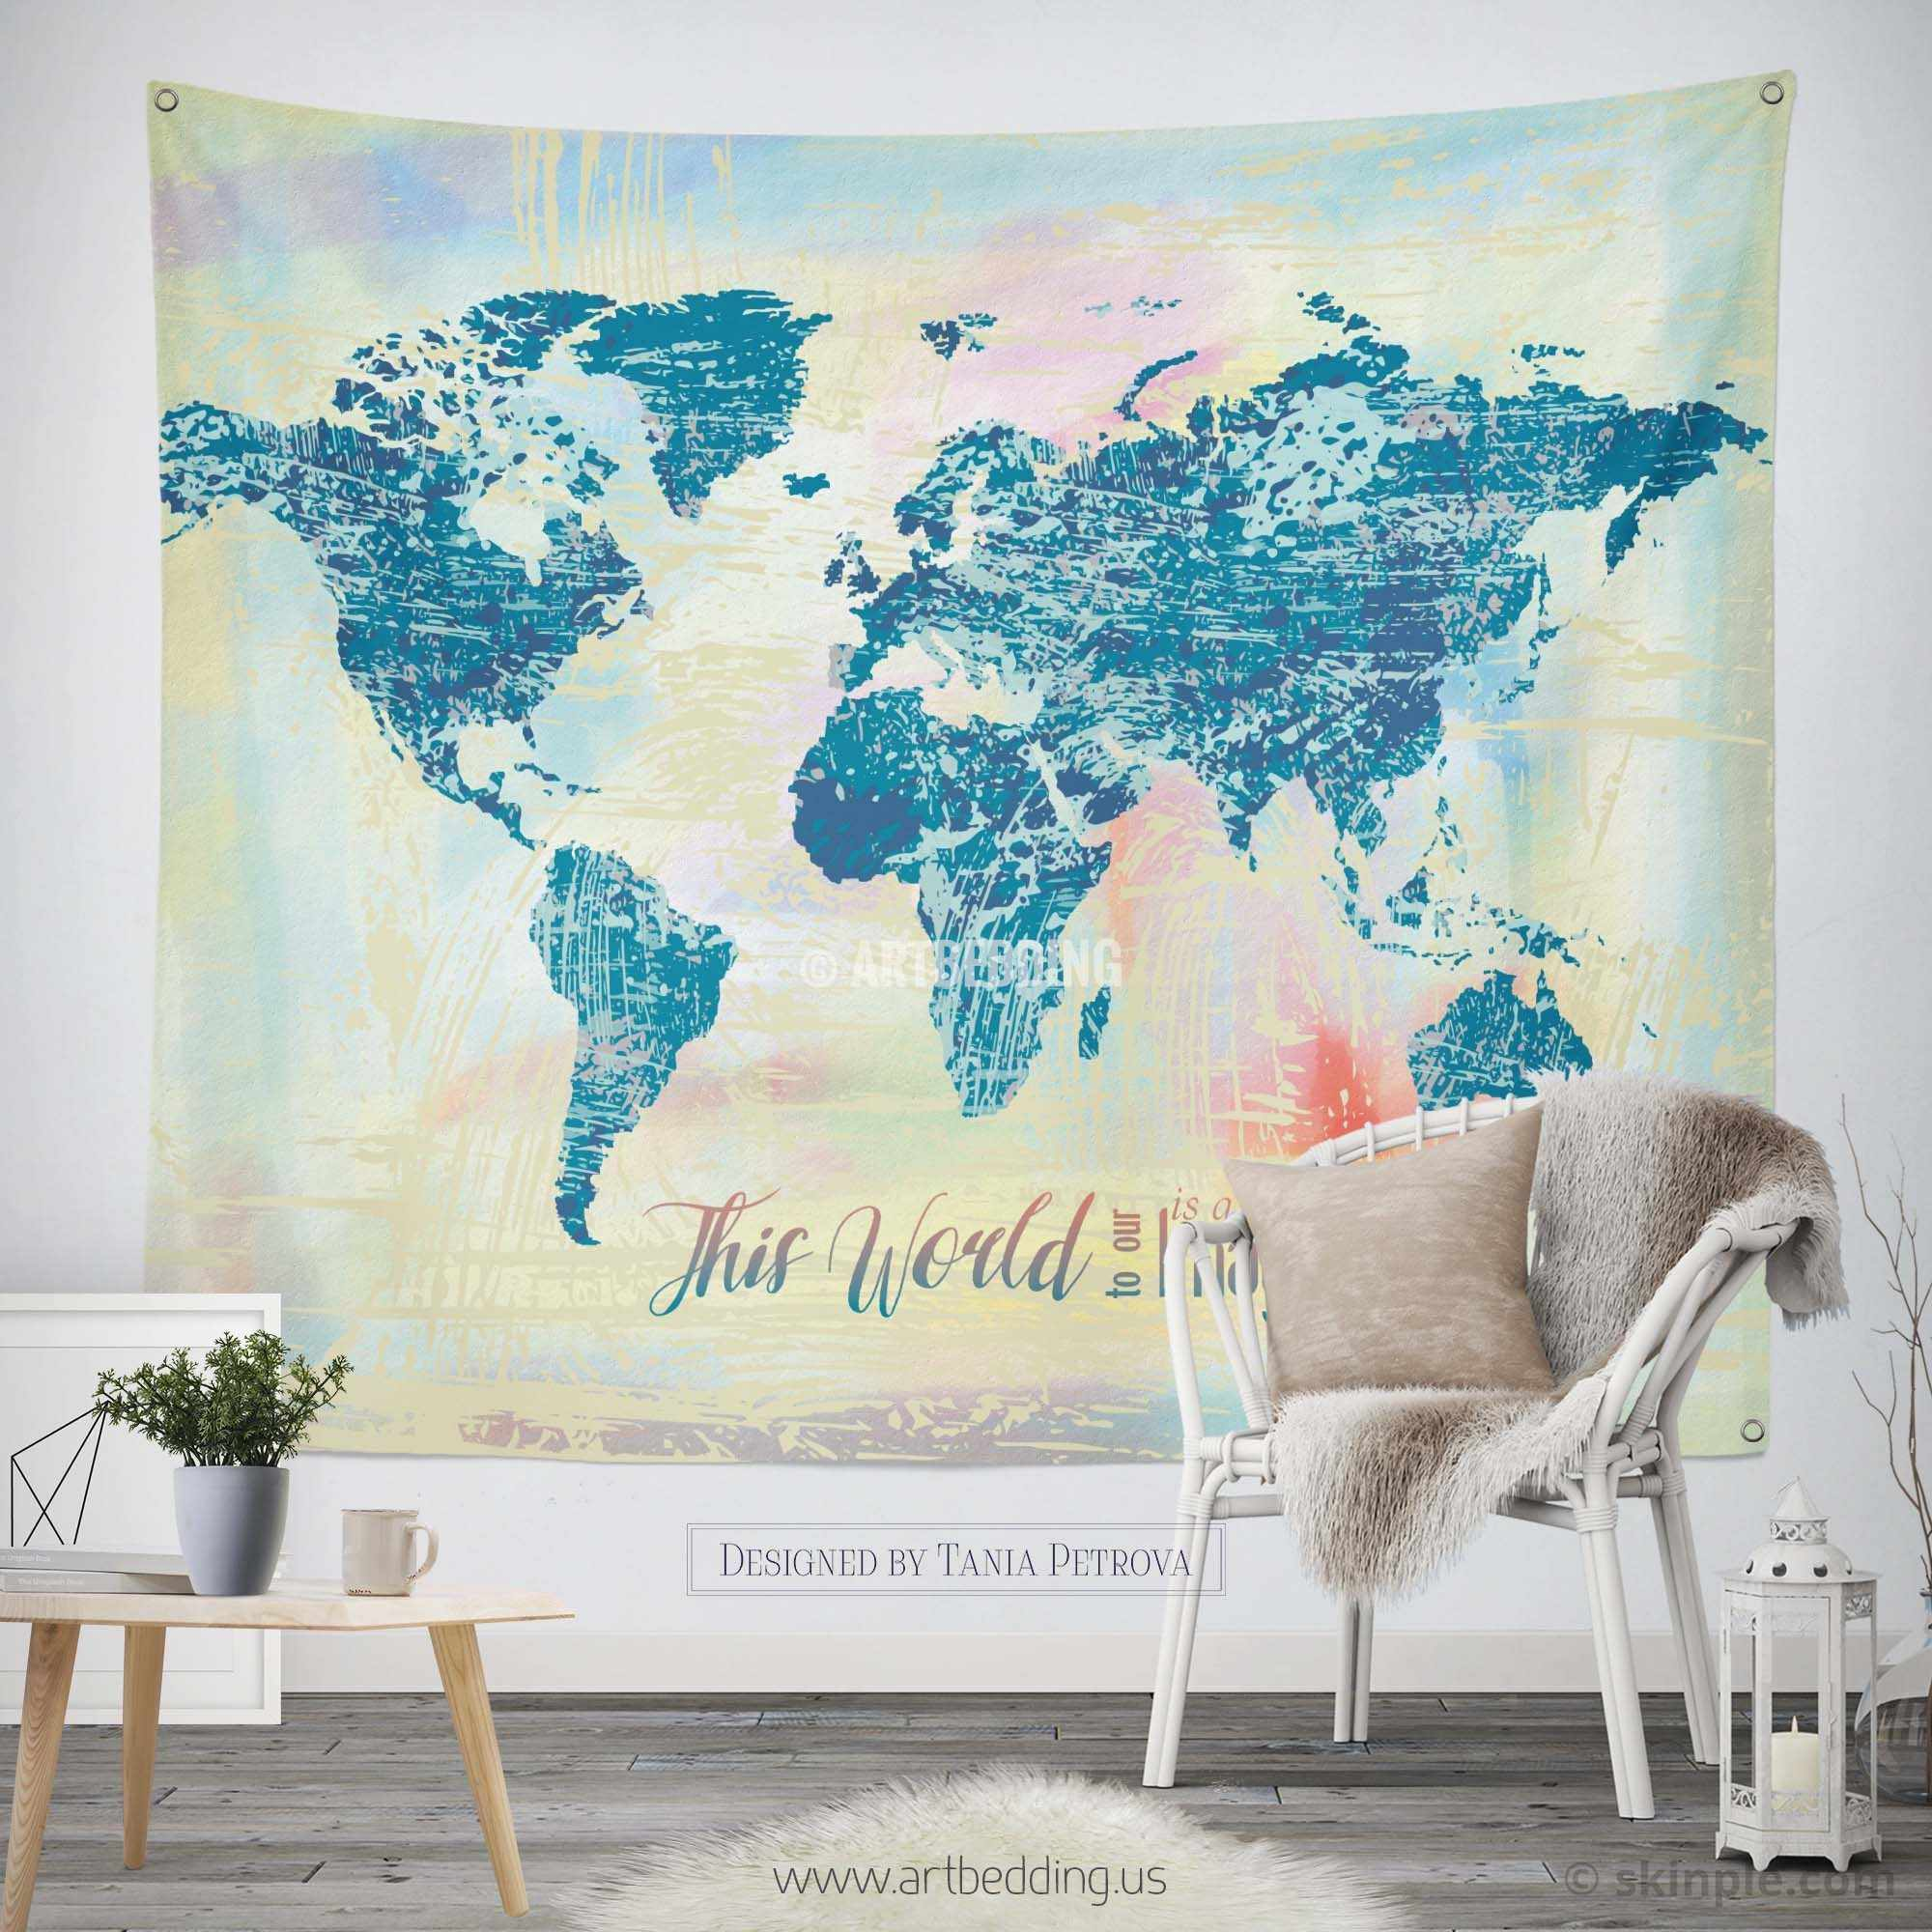 Watercolor world map wall tapestry grunge world map wall tapestry watercolor world map wall tapestry grunge world map wall tapestry hippie tapestry wall hanging gumiabroncs